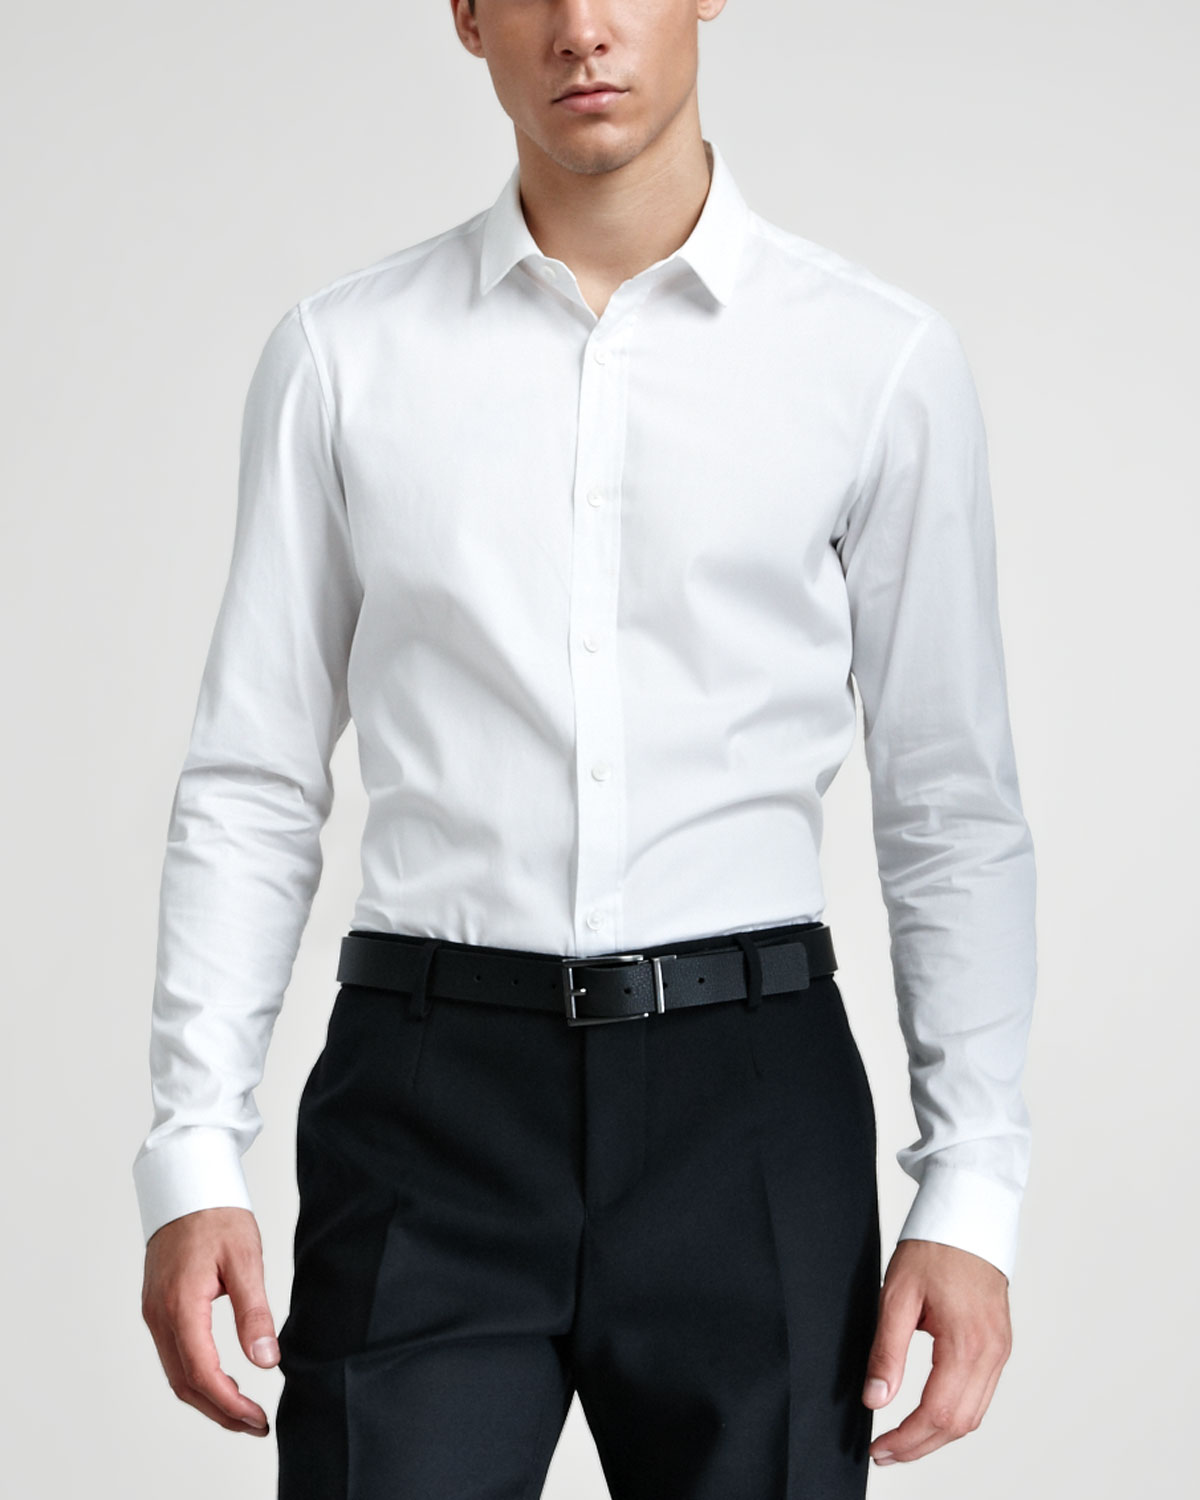 burberry prorsum dress shirt optic white in white for